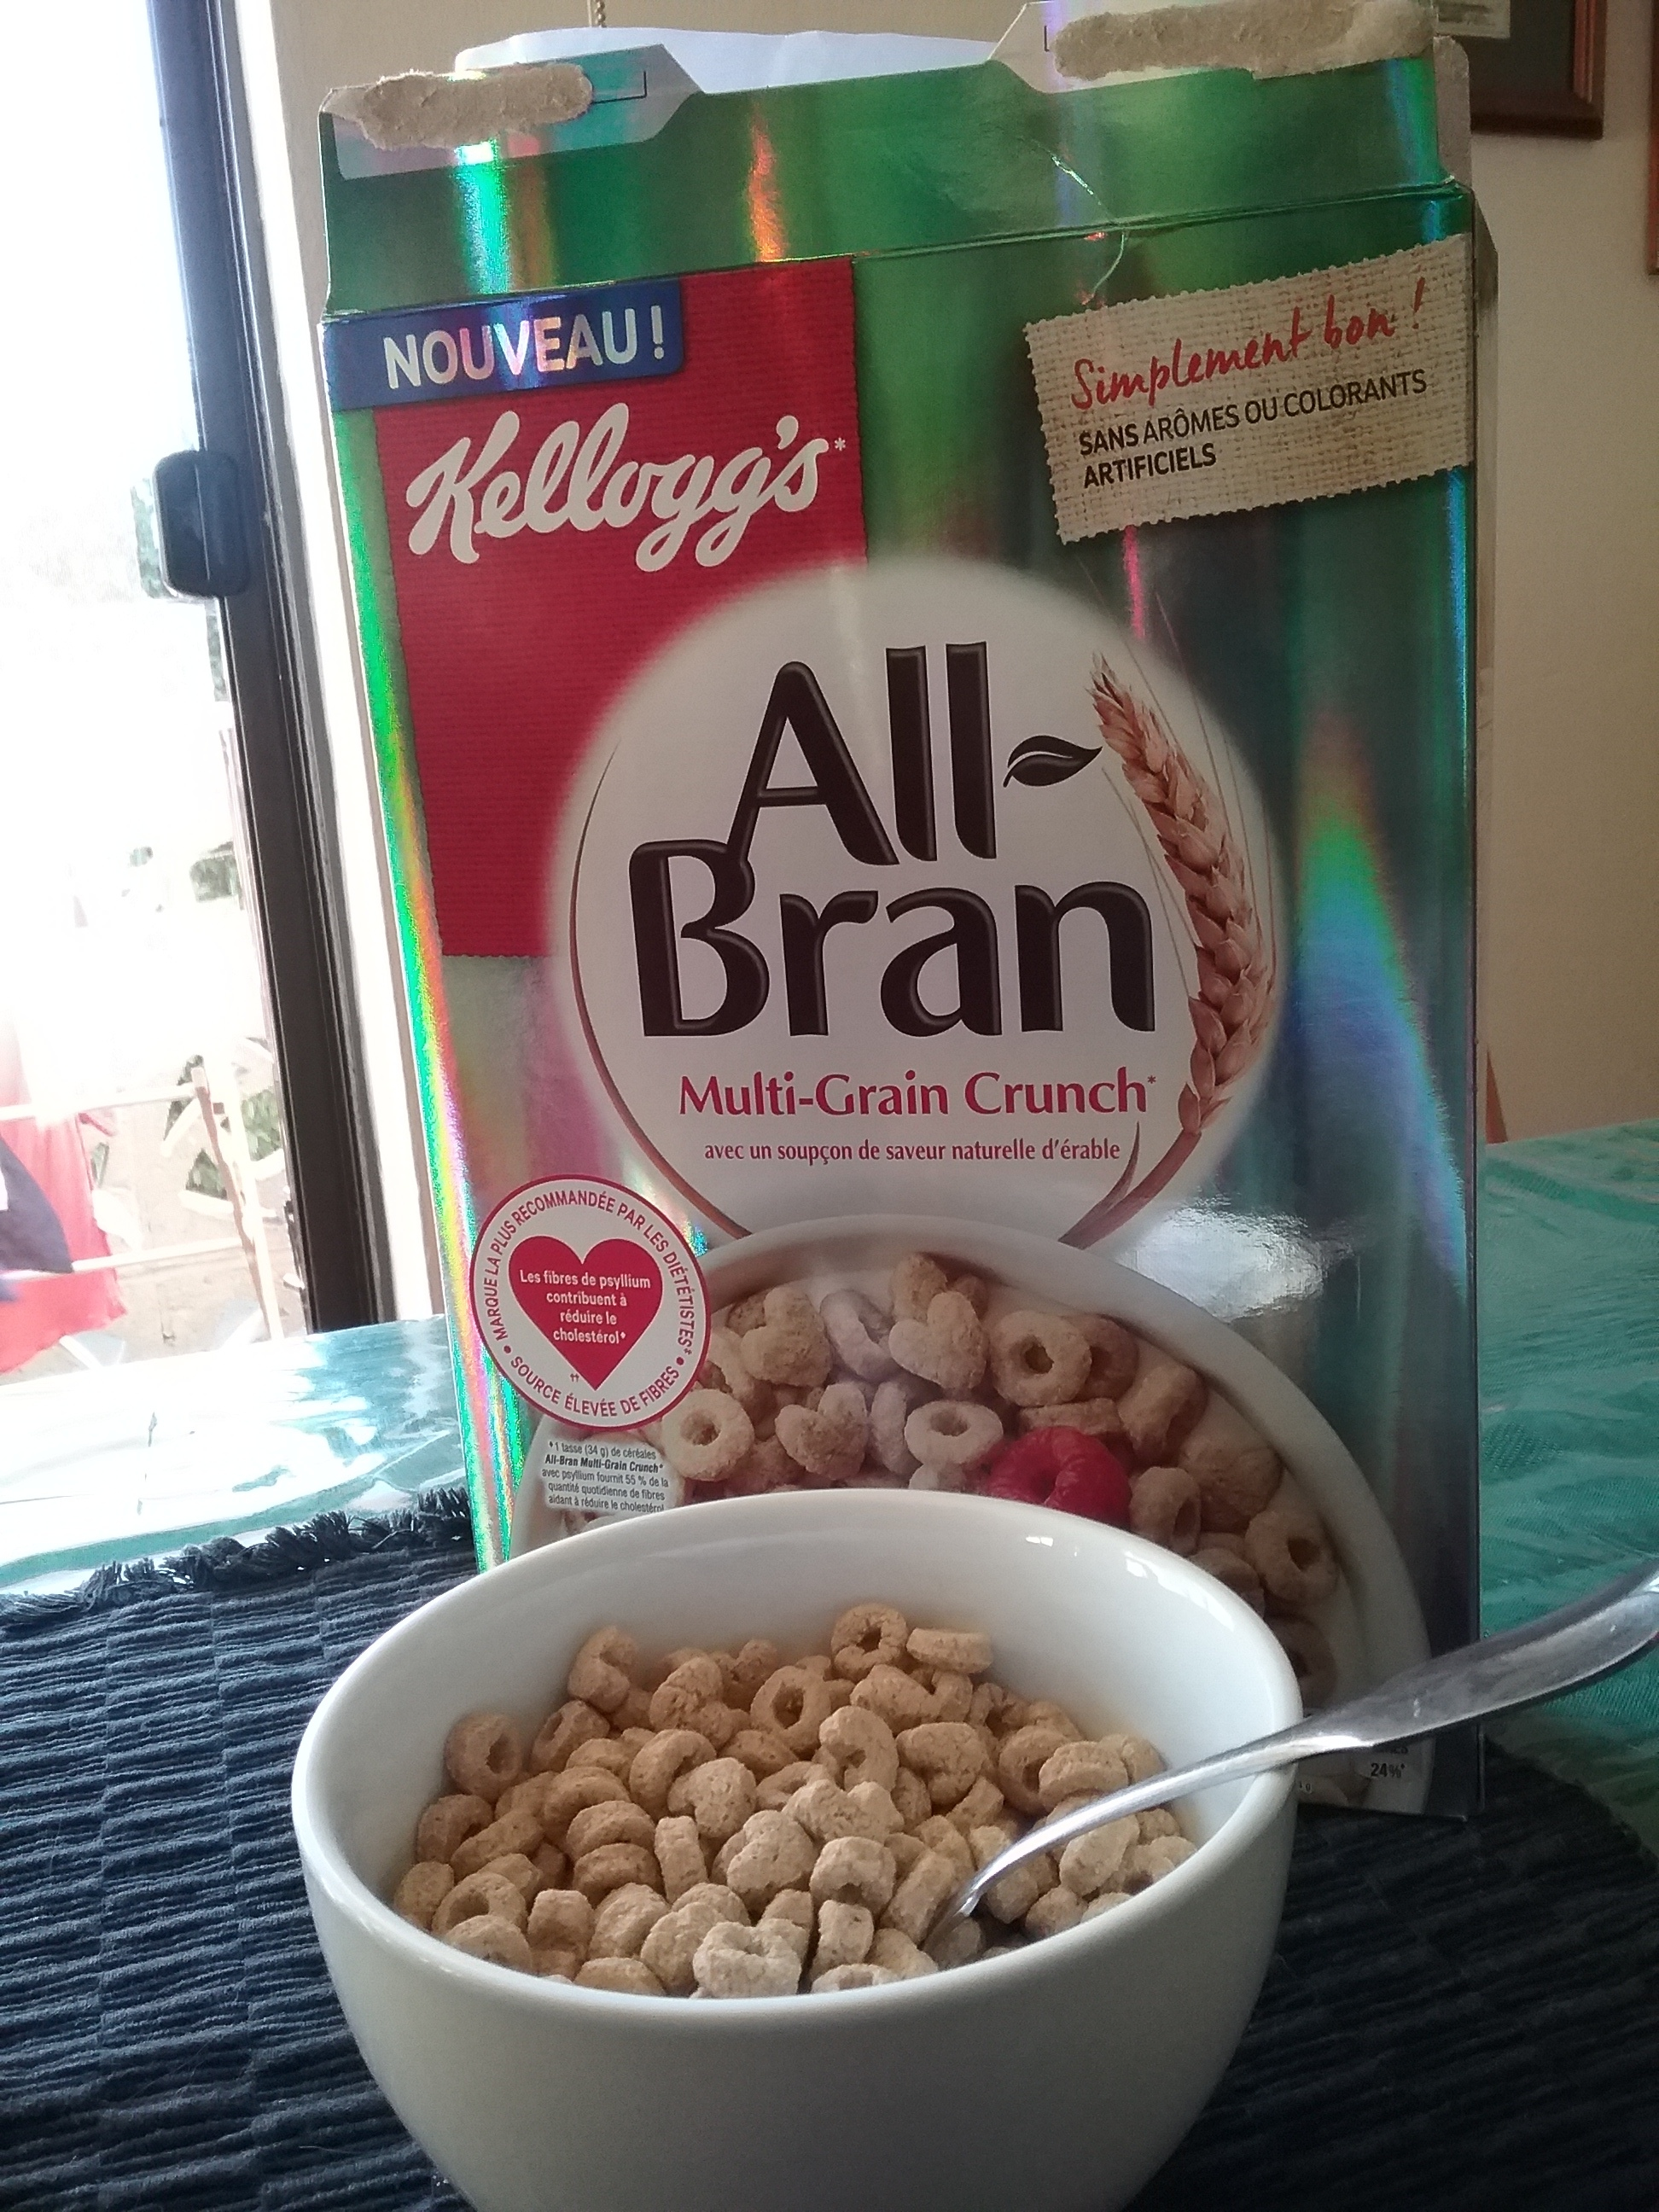 All Bran Multi-Grain Crunch Cereal Reviews In Cereal